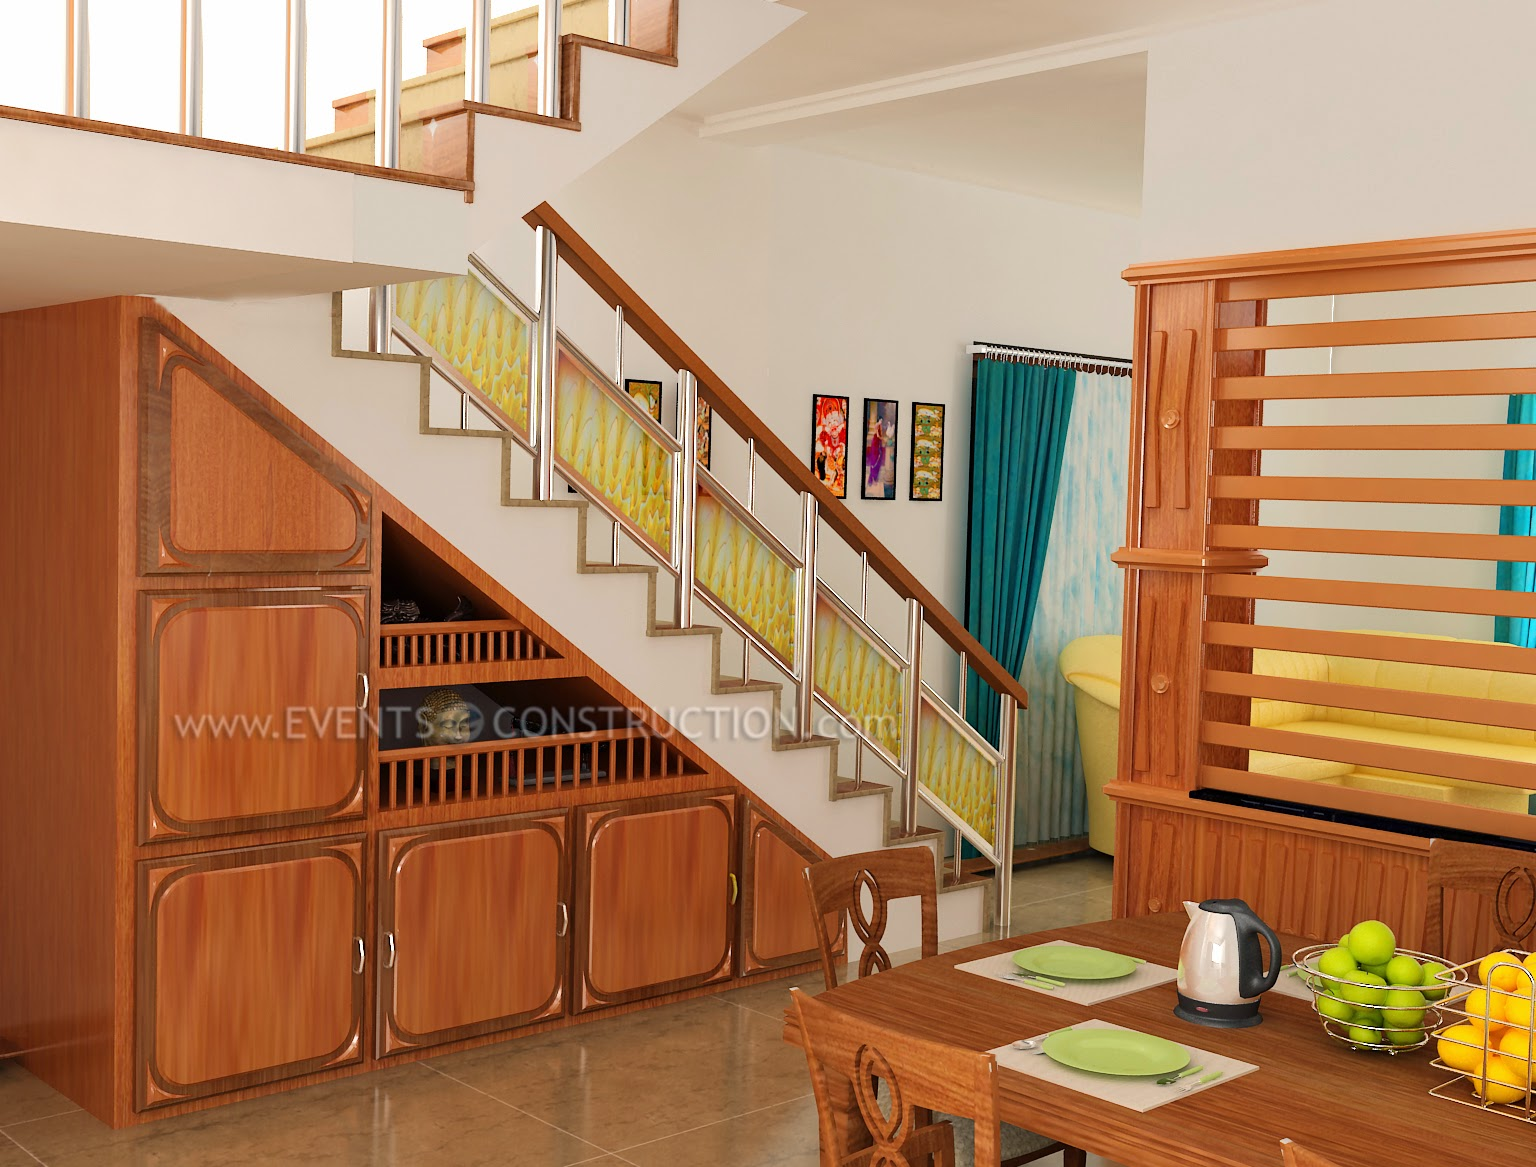 Comstaircase Designs For Homes : Evens Construction Pvt Ltd: Staircase design for kerala homes